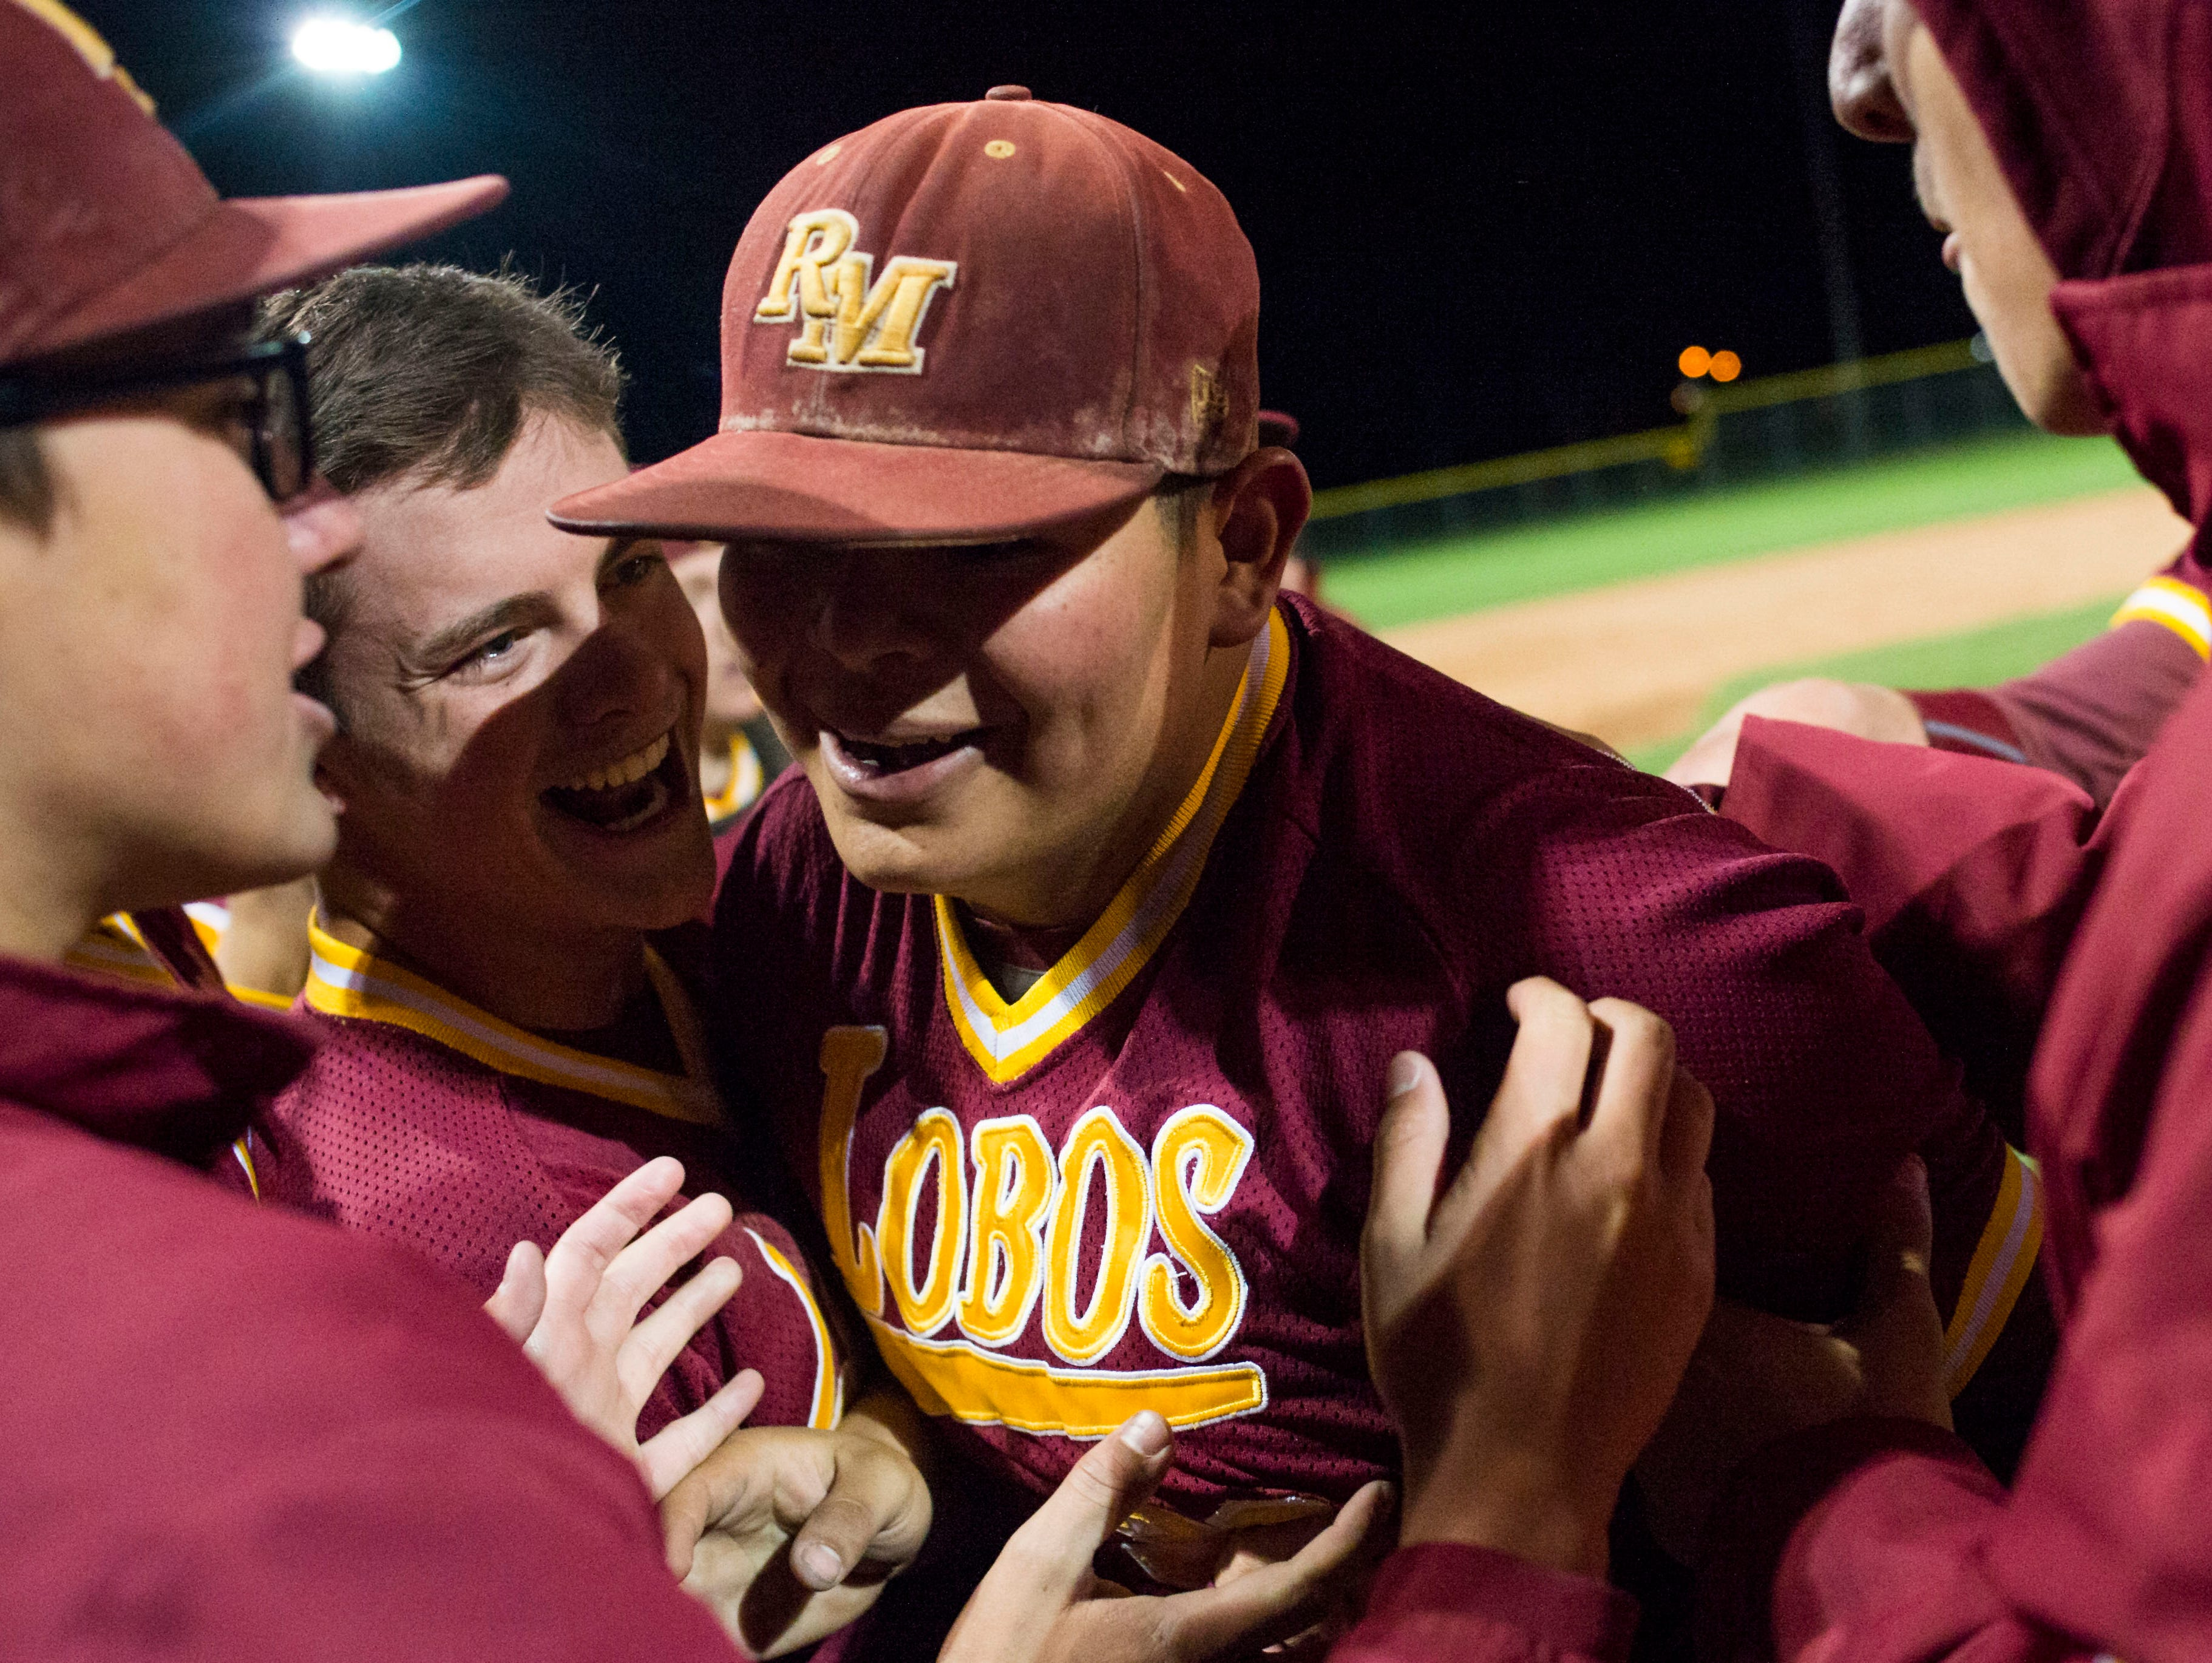 Austin Alarid of Rocky Mountain High School is mobbed by his teammates after the Lobos defeated Fort Collins 7-5 at City Park field Tuesday, April 26, 2016. Alarid struck out all seven batters he faced in the final innings of the game.